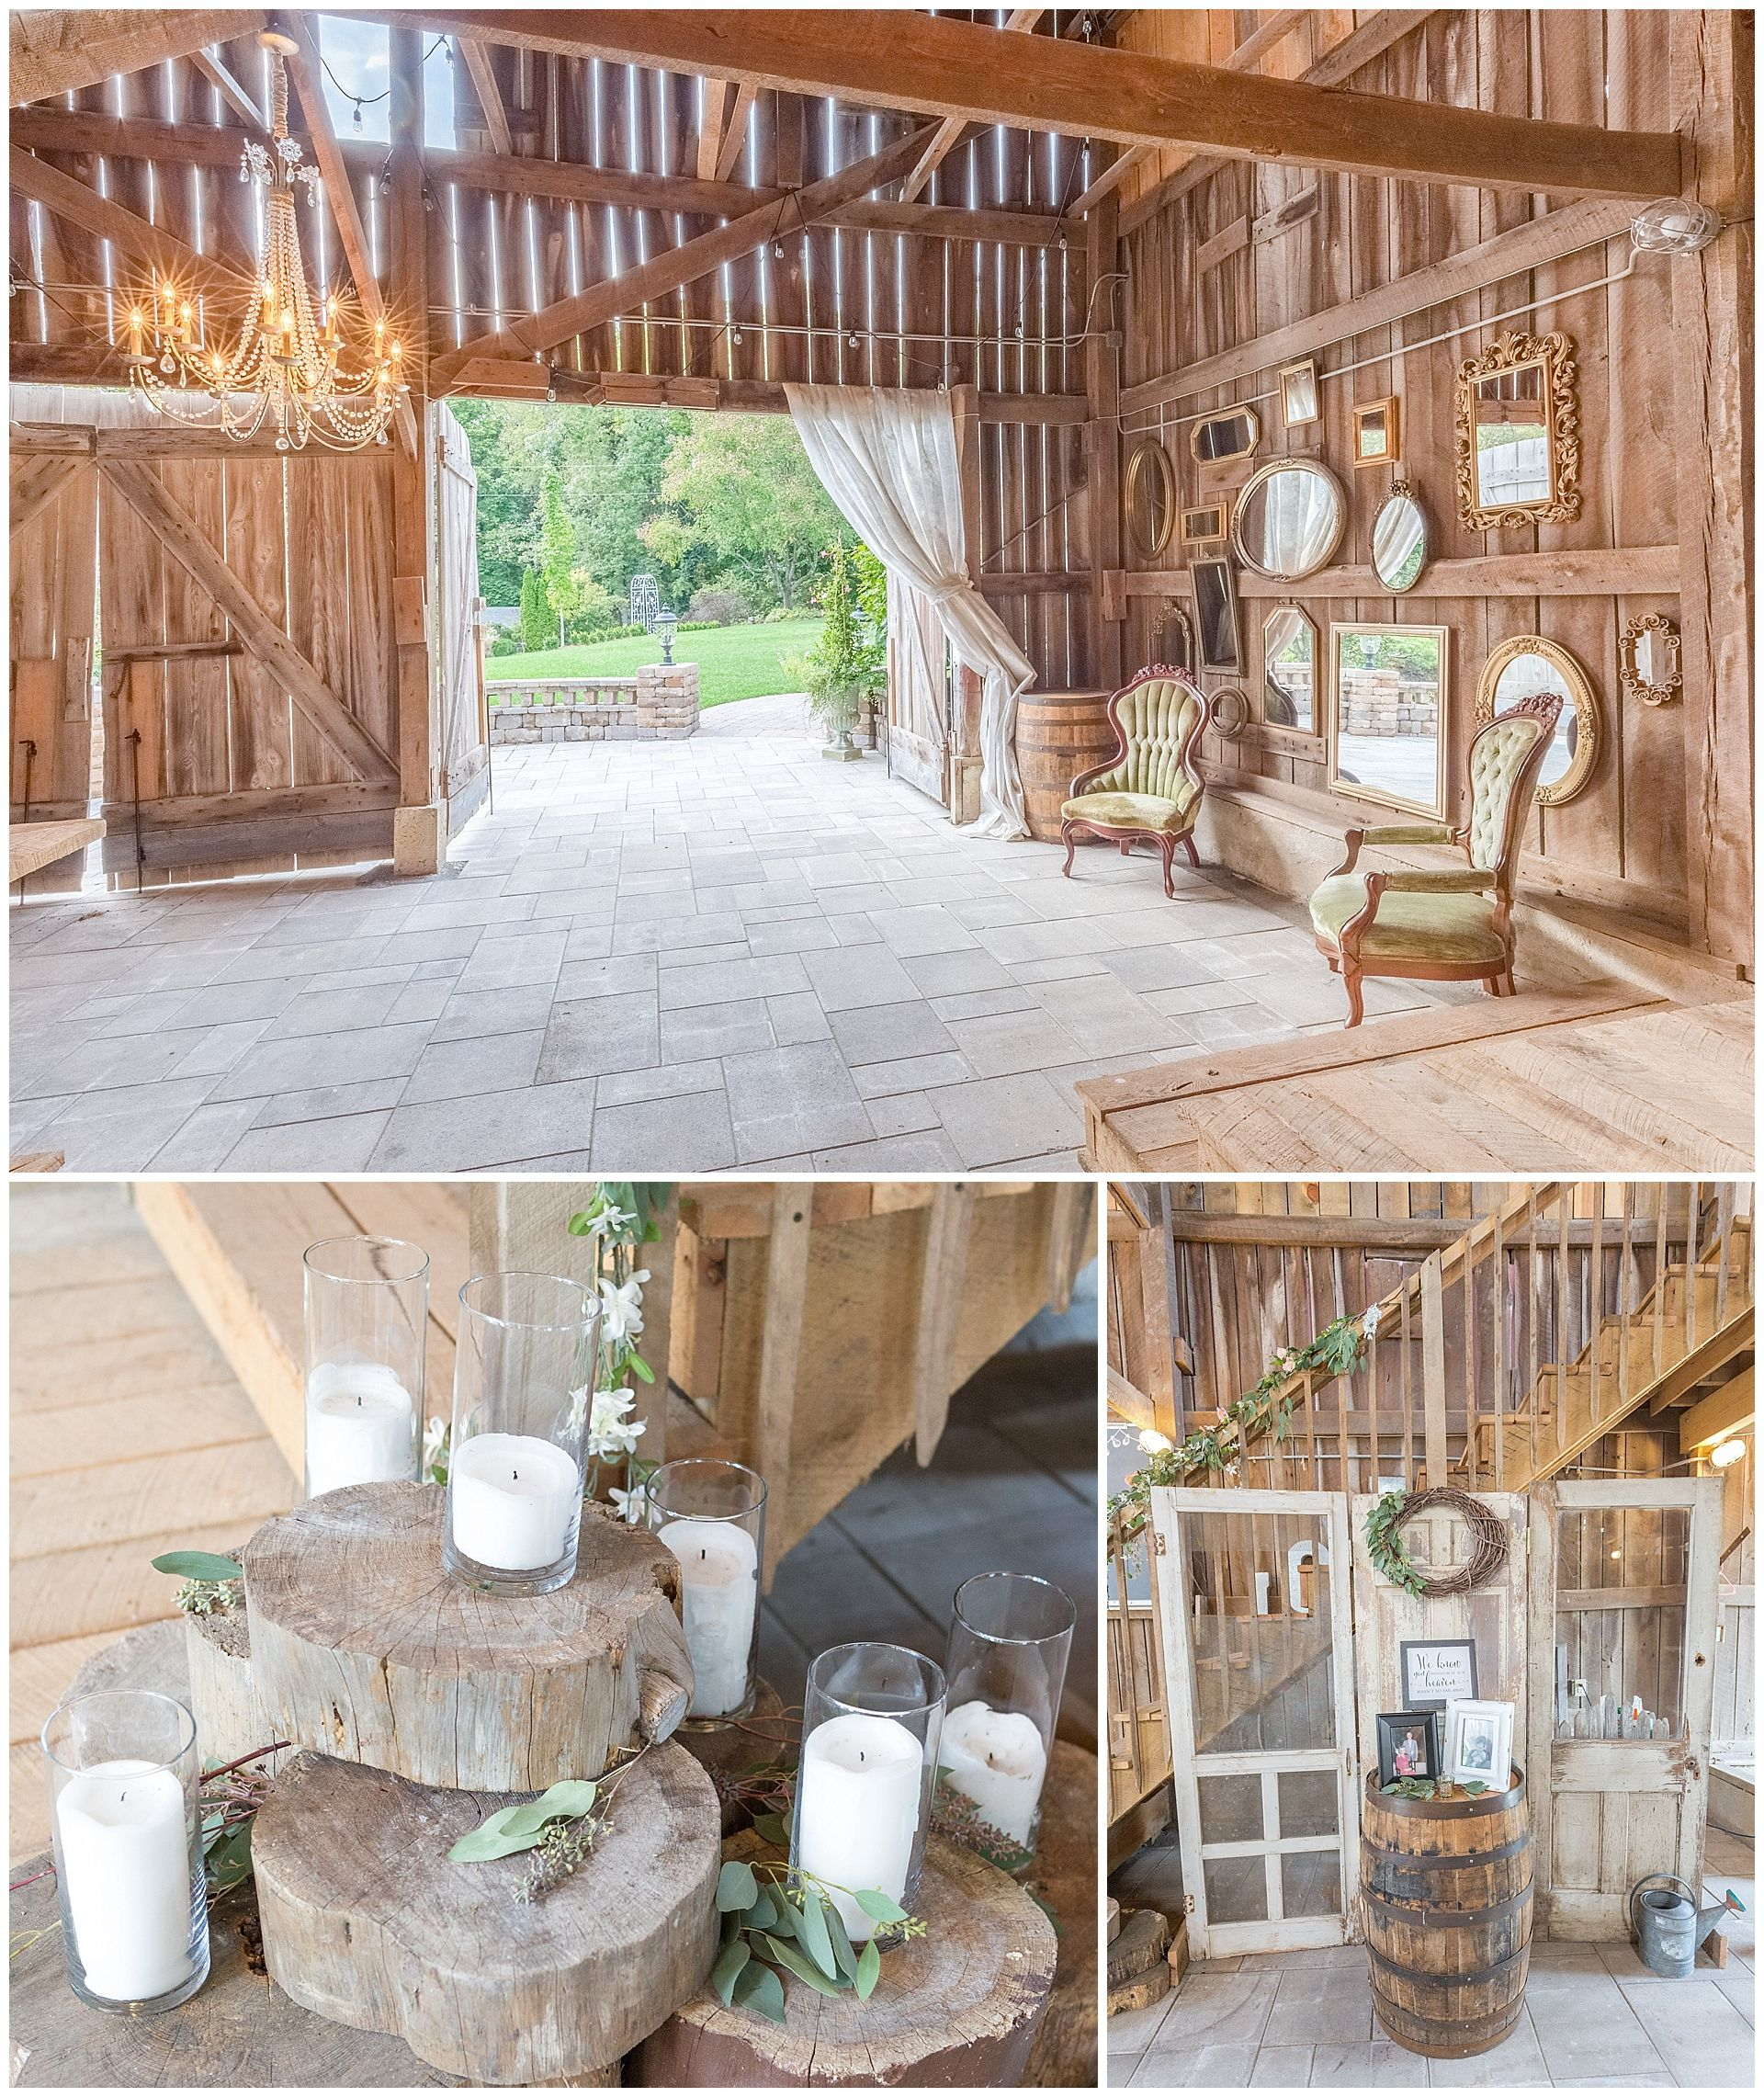 The Barn At Springhouse Gardens Is A Rustic Wedding Venue Located In Nicholasville Ky Have Your Ceremony Reception Midst Of Lush